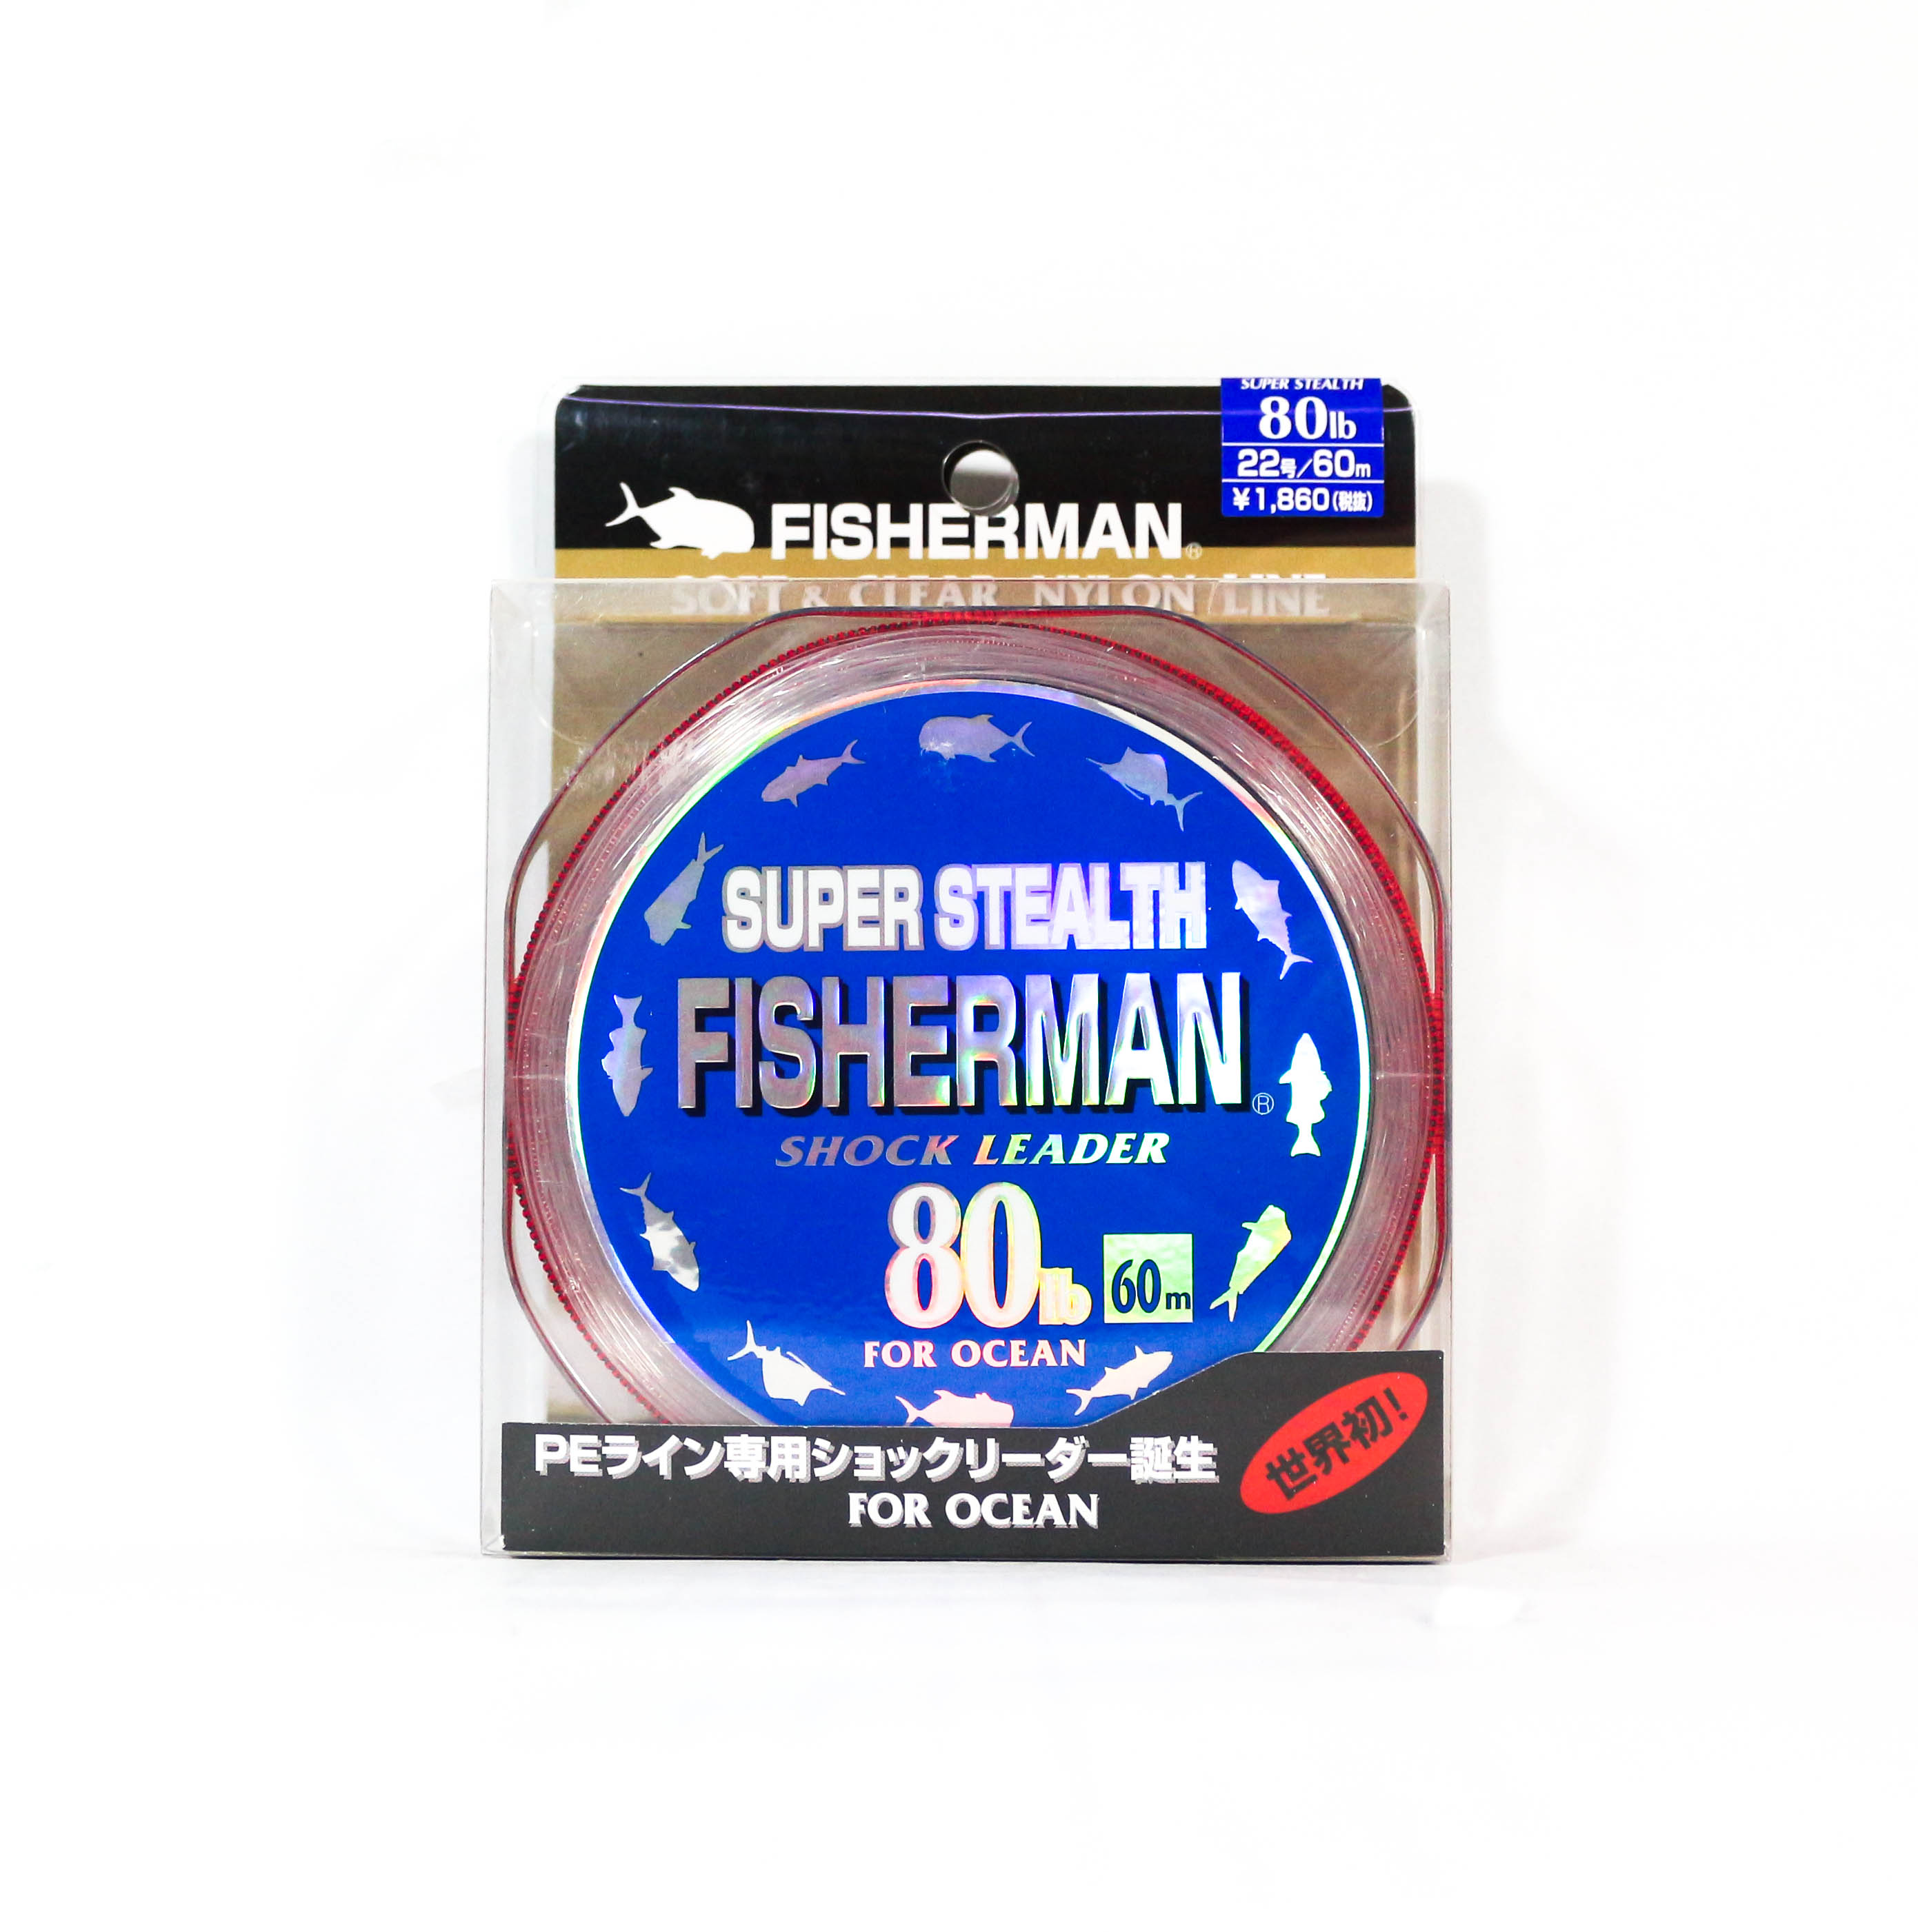 Fisherman Super Stealth Nylon Shock Leader 80 lb x 60 meter (0030)